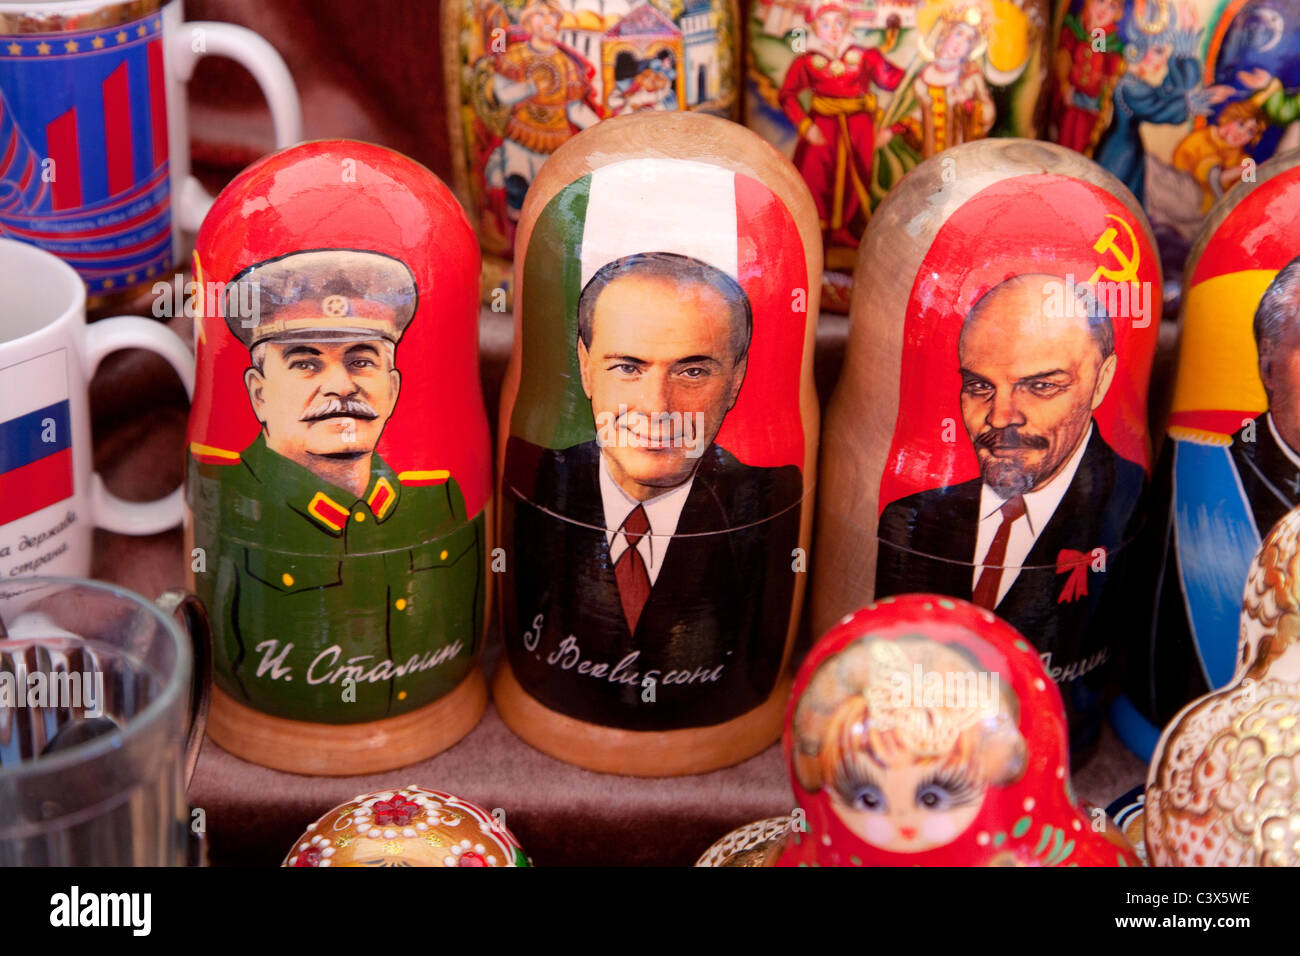 Souvenirs At The Russian Store